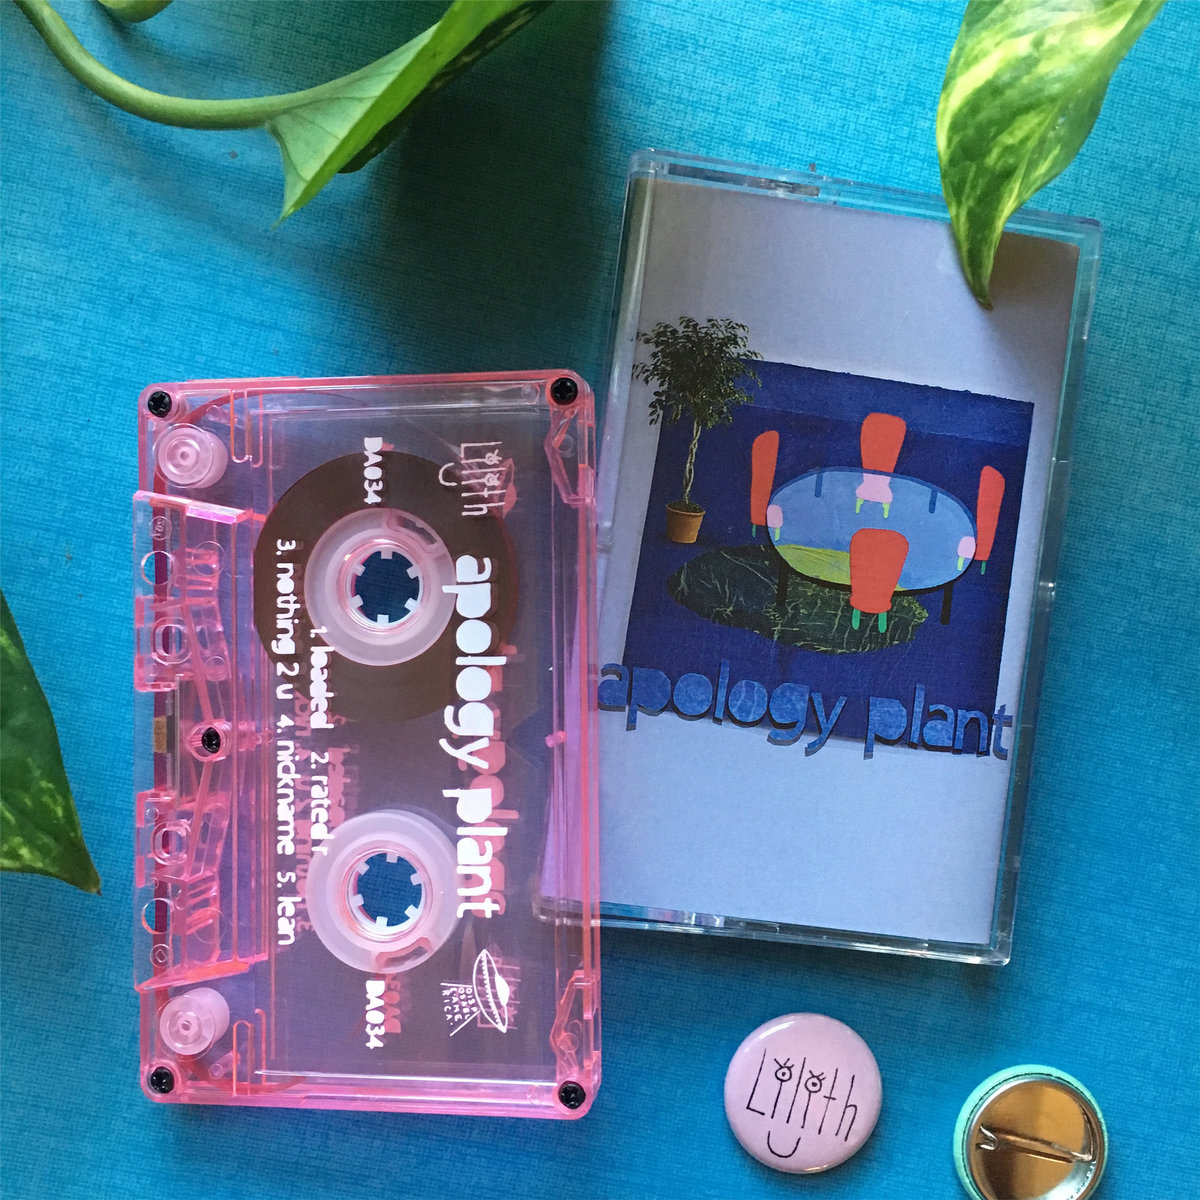 Lilith - Apology Plant (Disposable America)